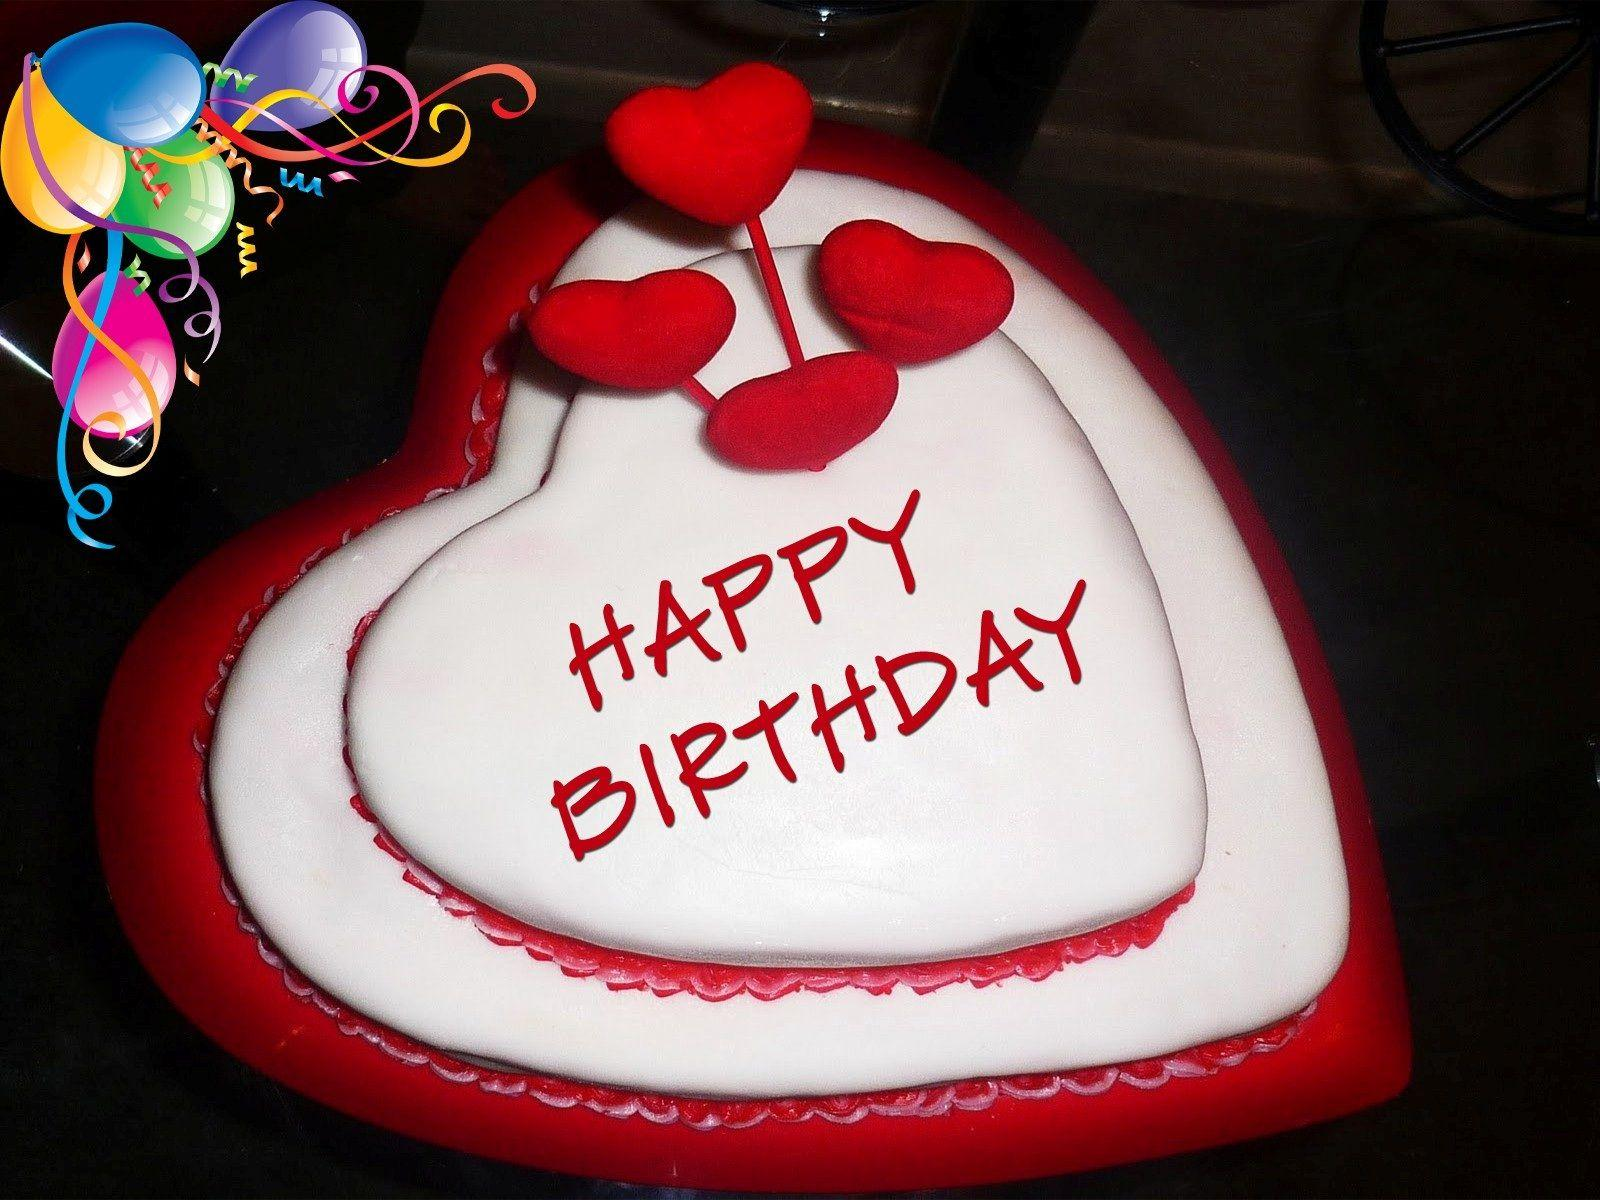 Happy birthday my love heart shape cake wallpapers